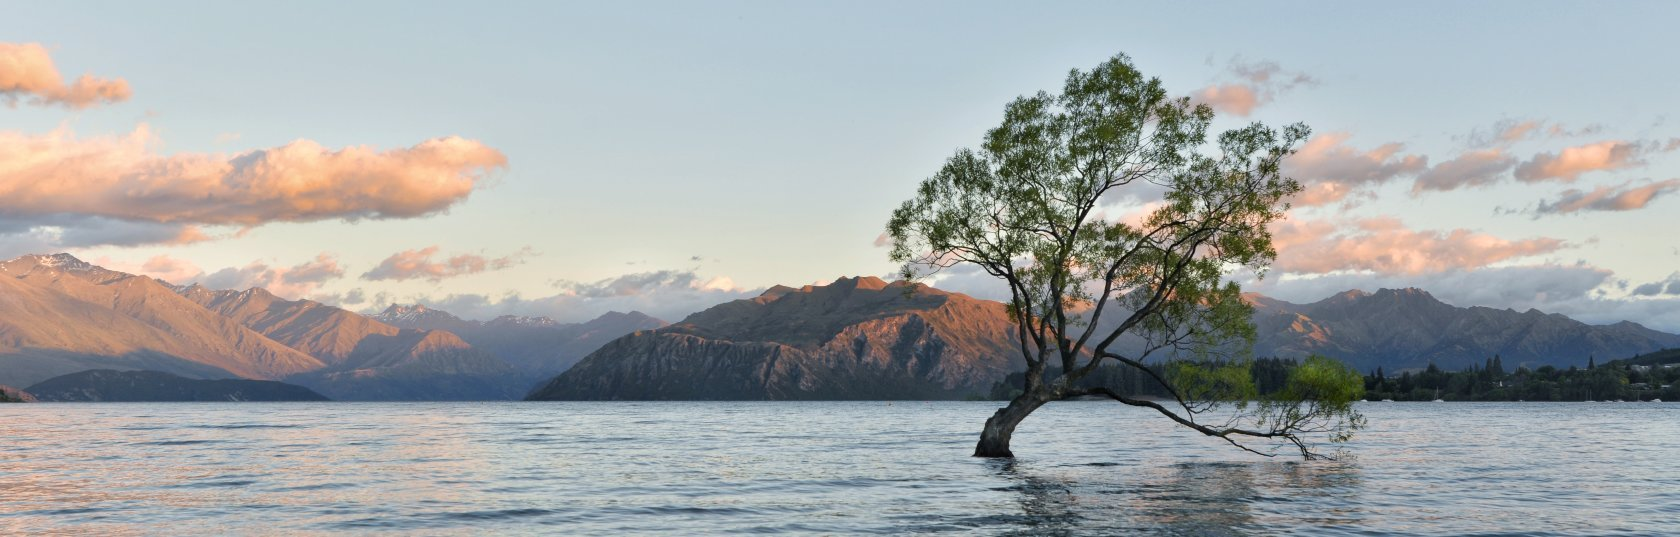 Growing the wave of sustainability in the Wanaka building sector